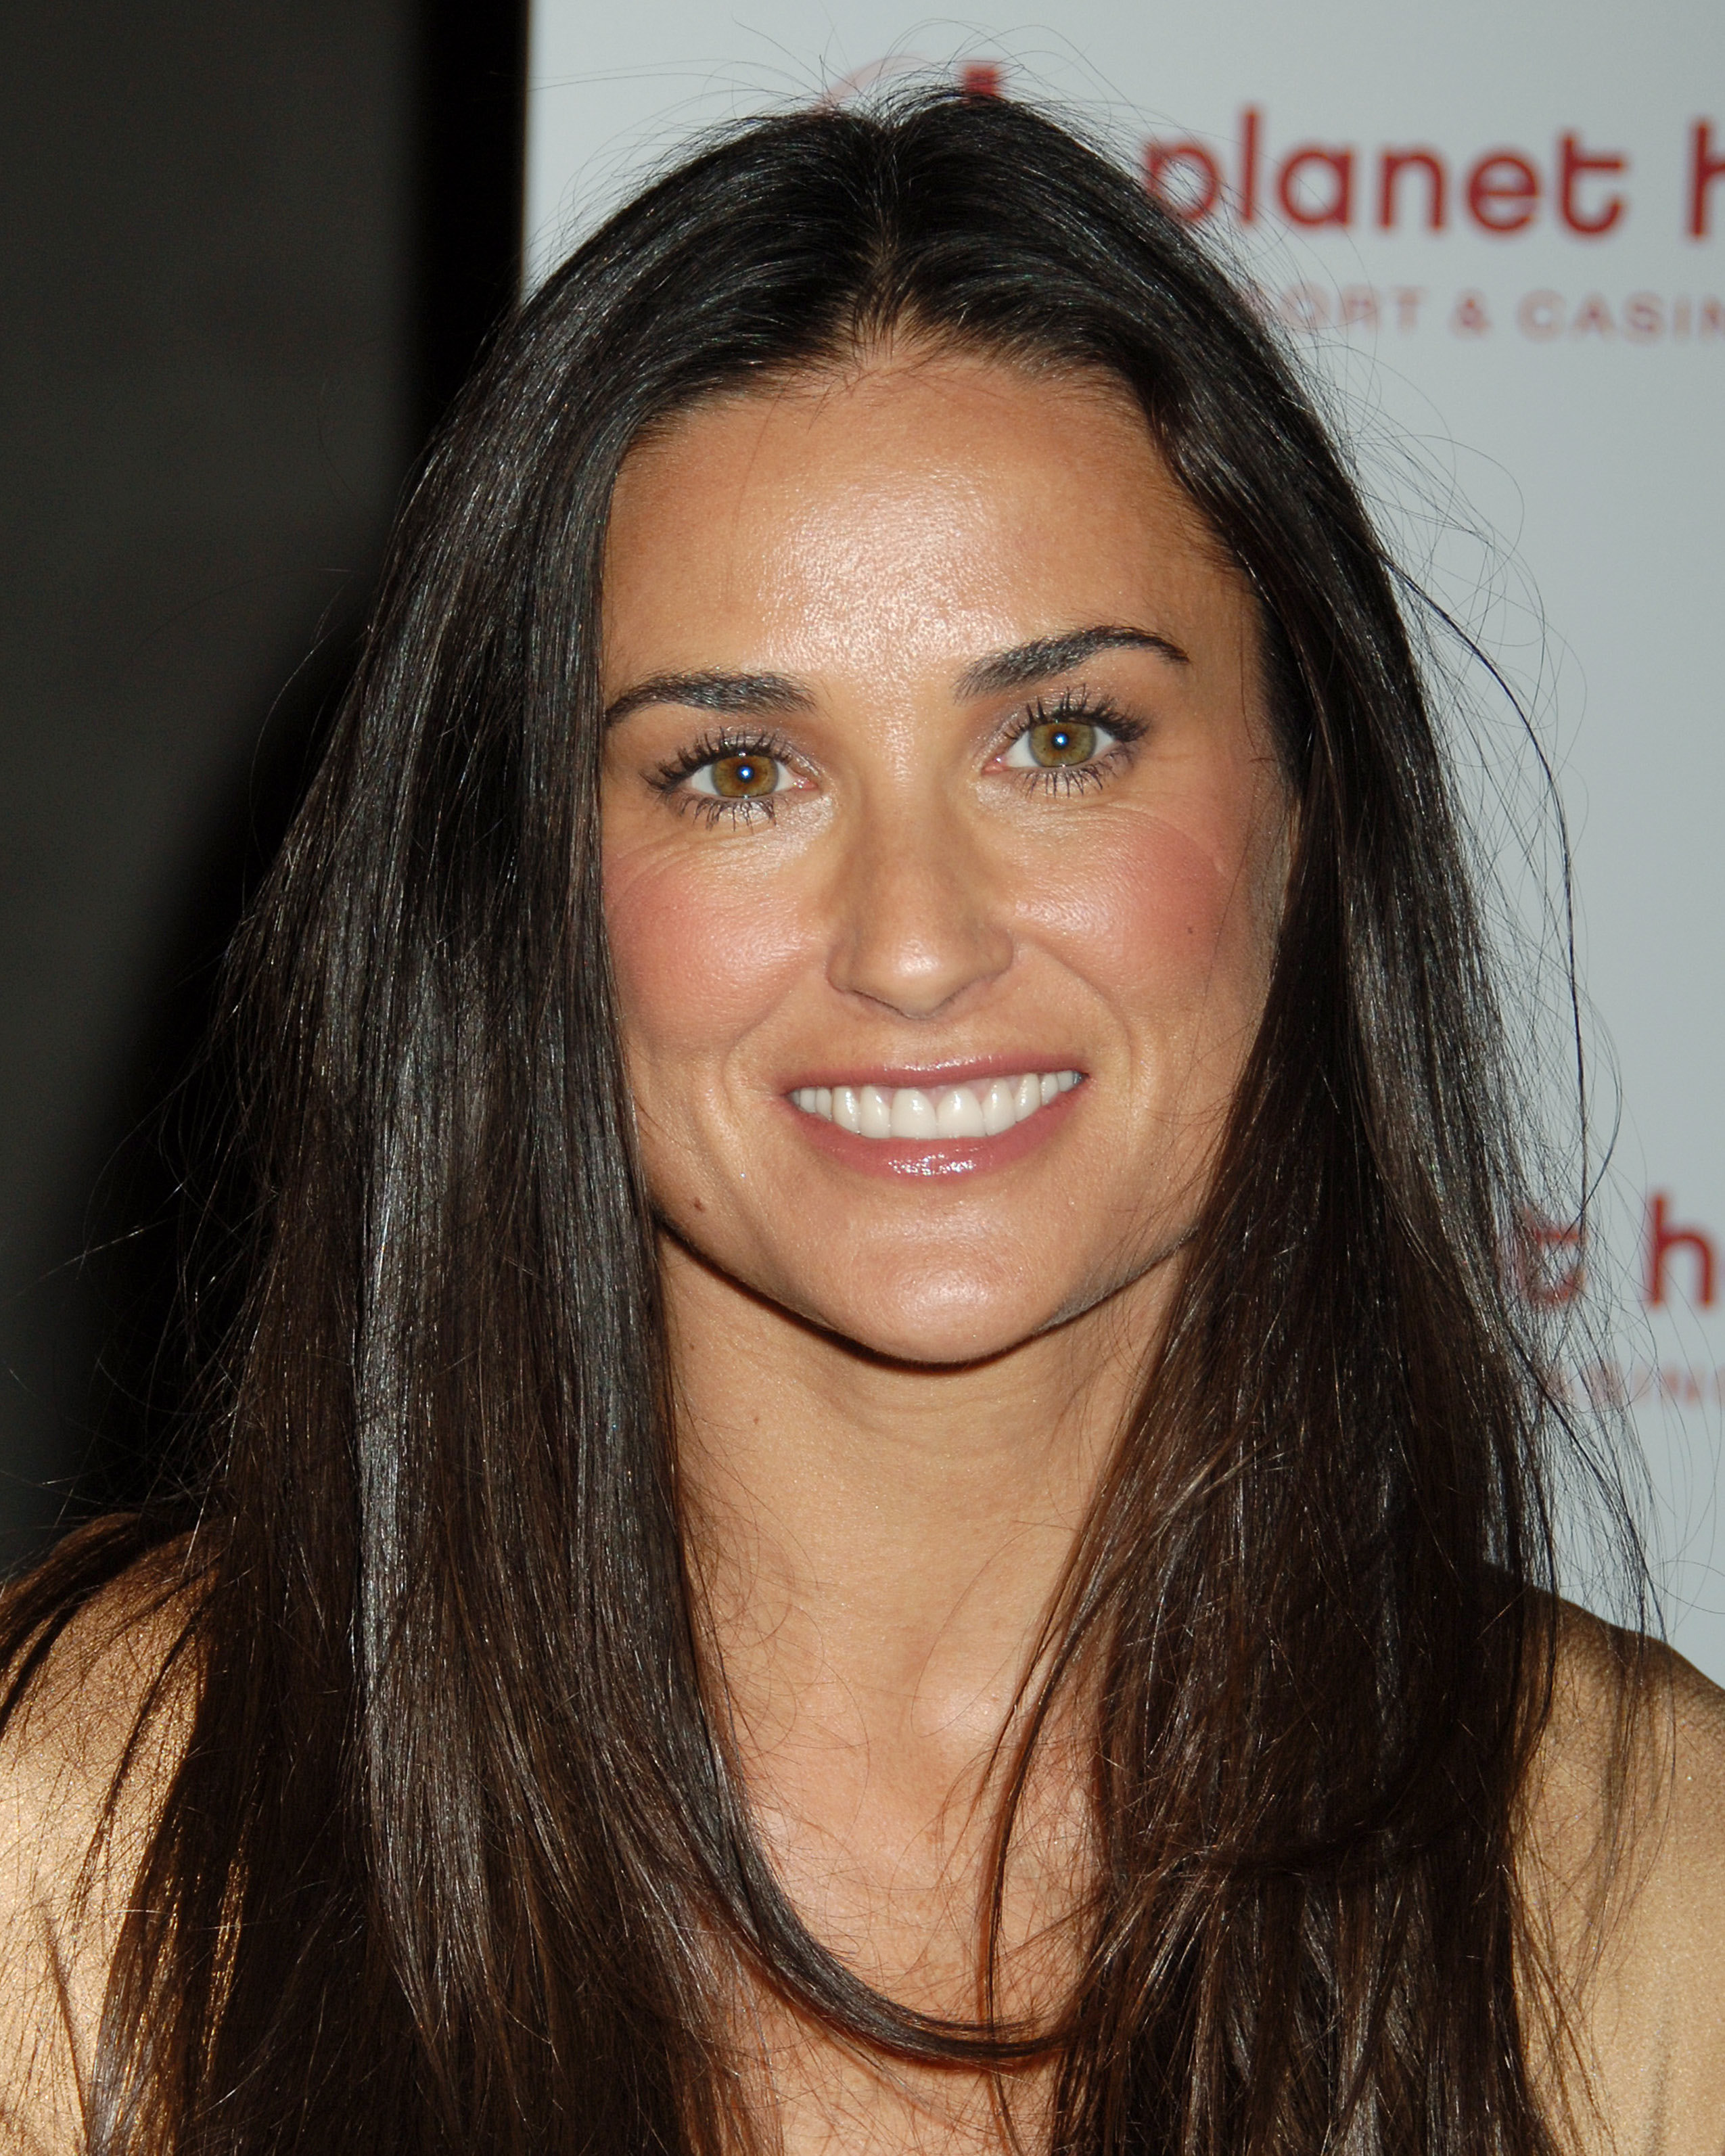 http://www.internetcelebrity.org/albums/wpw-20071121/82908_demi_moore_07_122_813lo.jpg